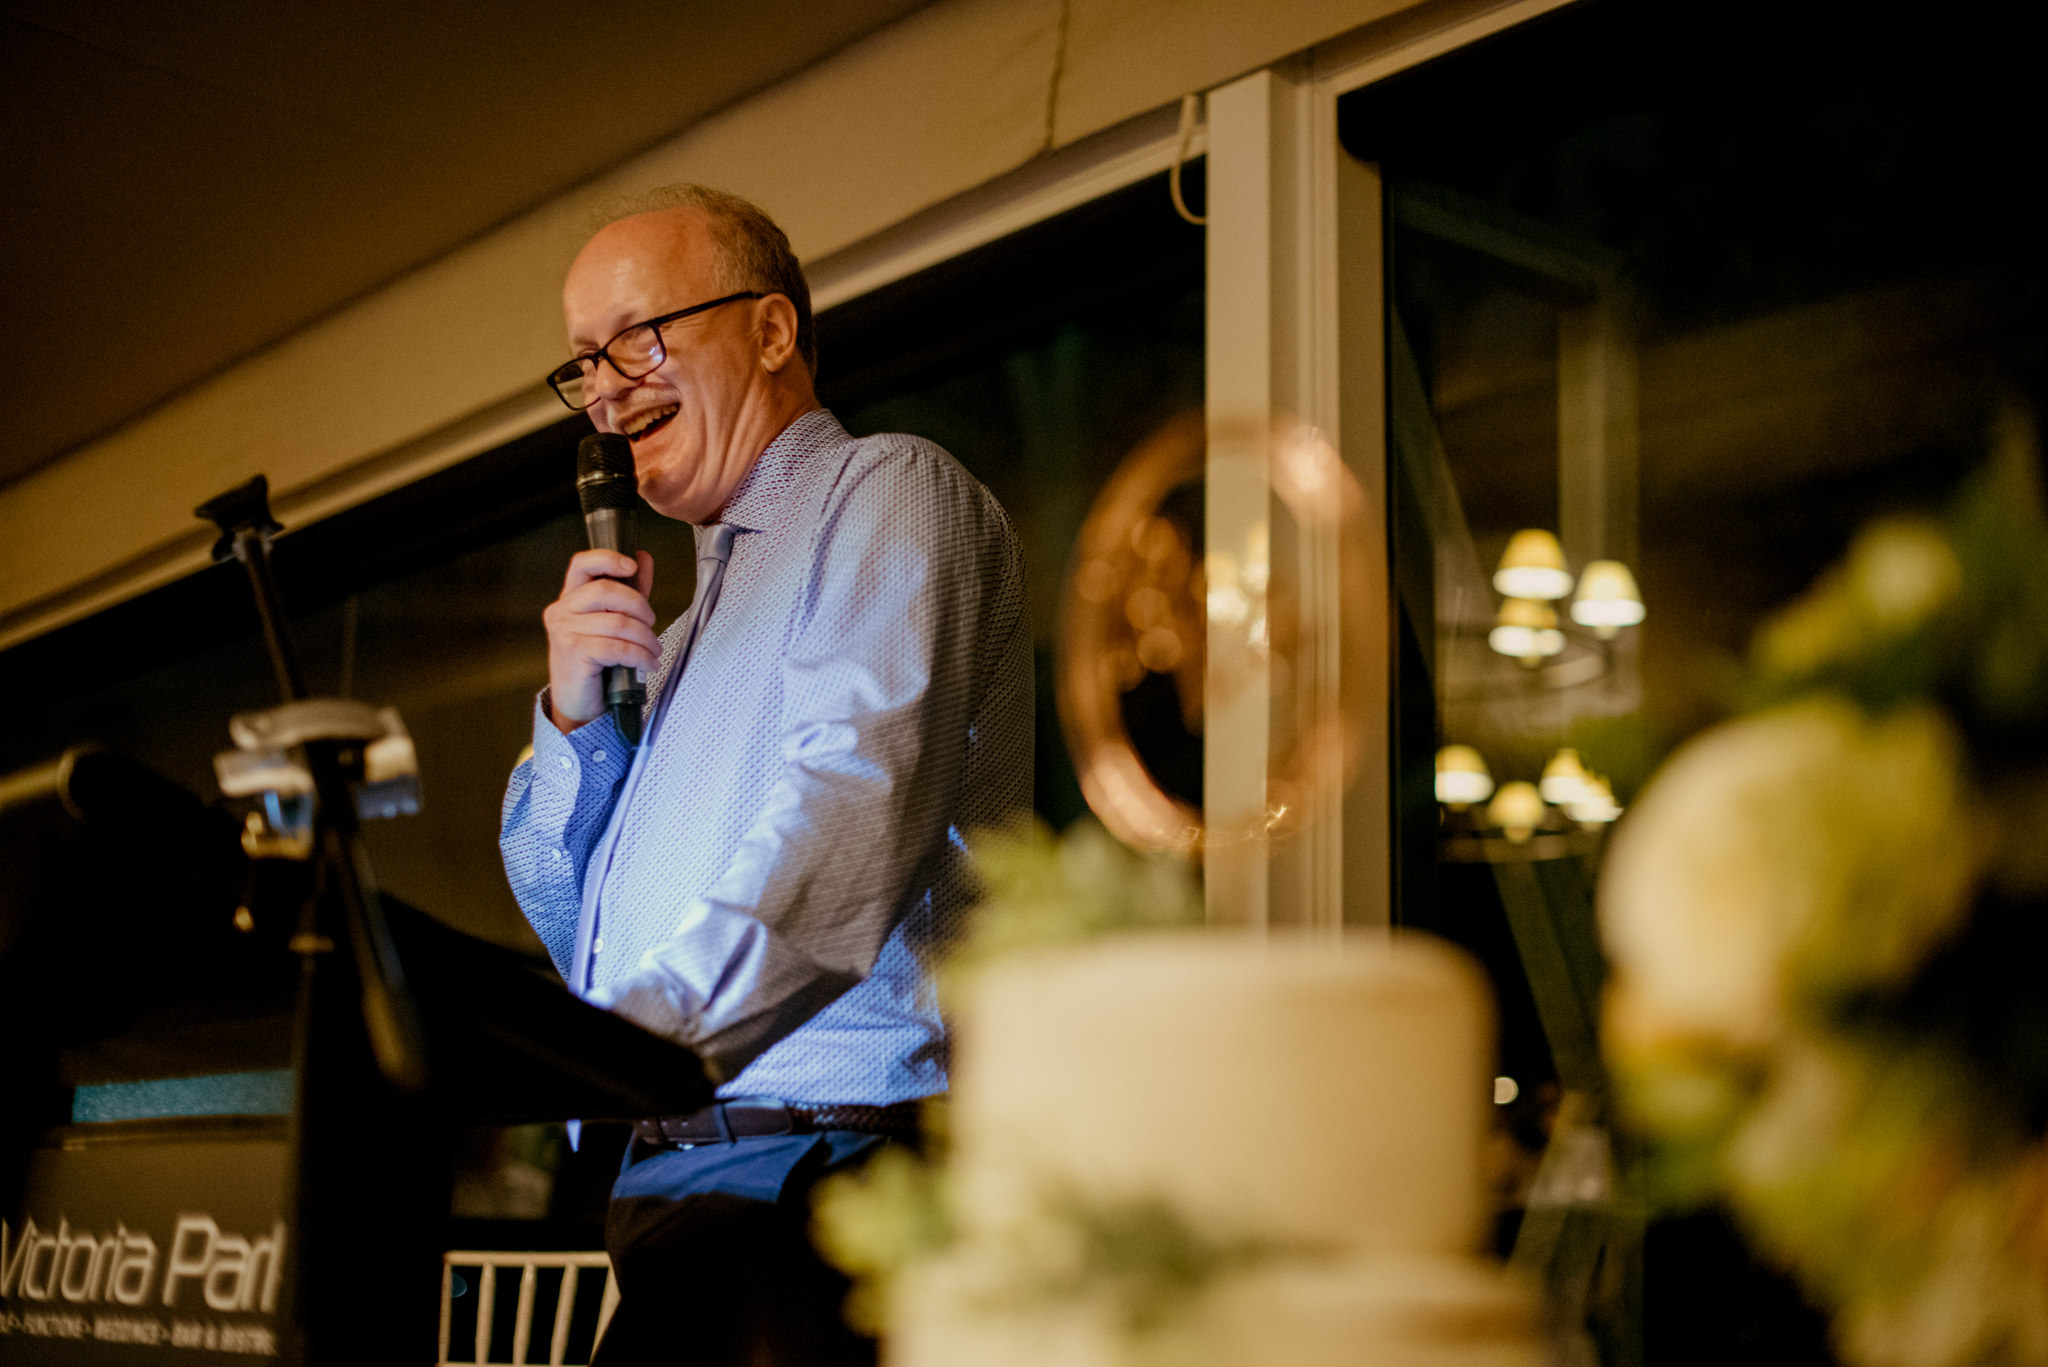 Father of the groom delivers wedding speech